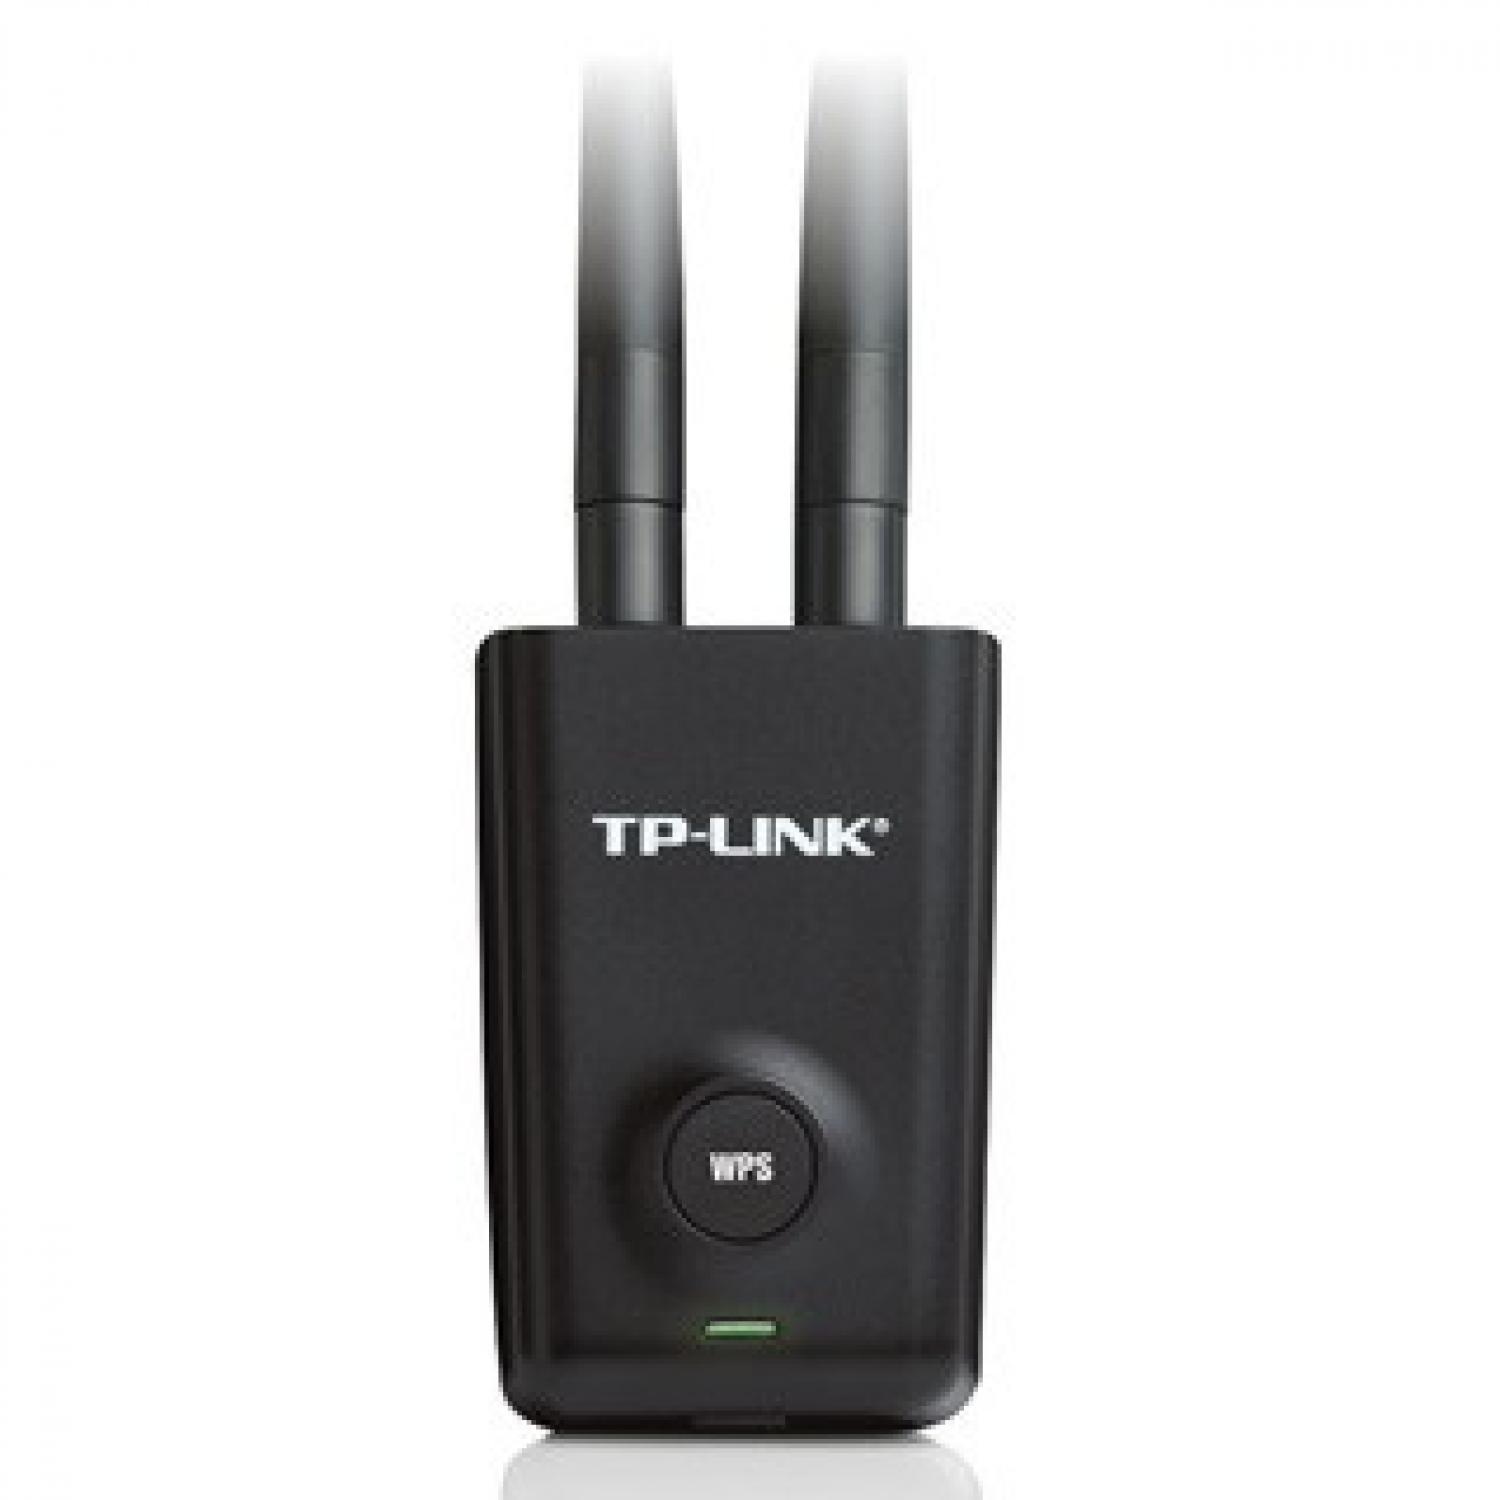 TP-LINK Wireless High Power USB Adapter N300 - TL-WN8200ND